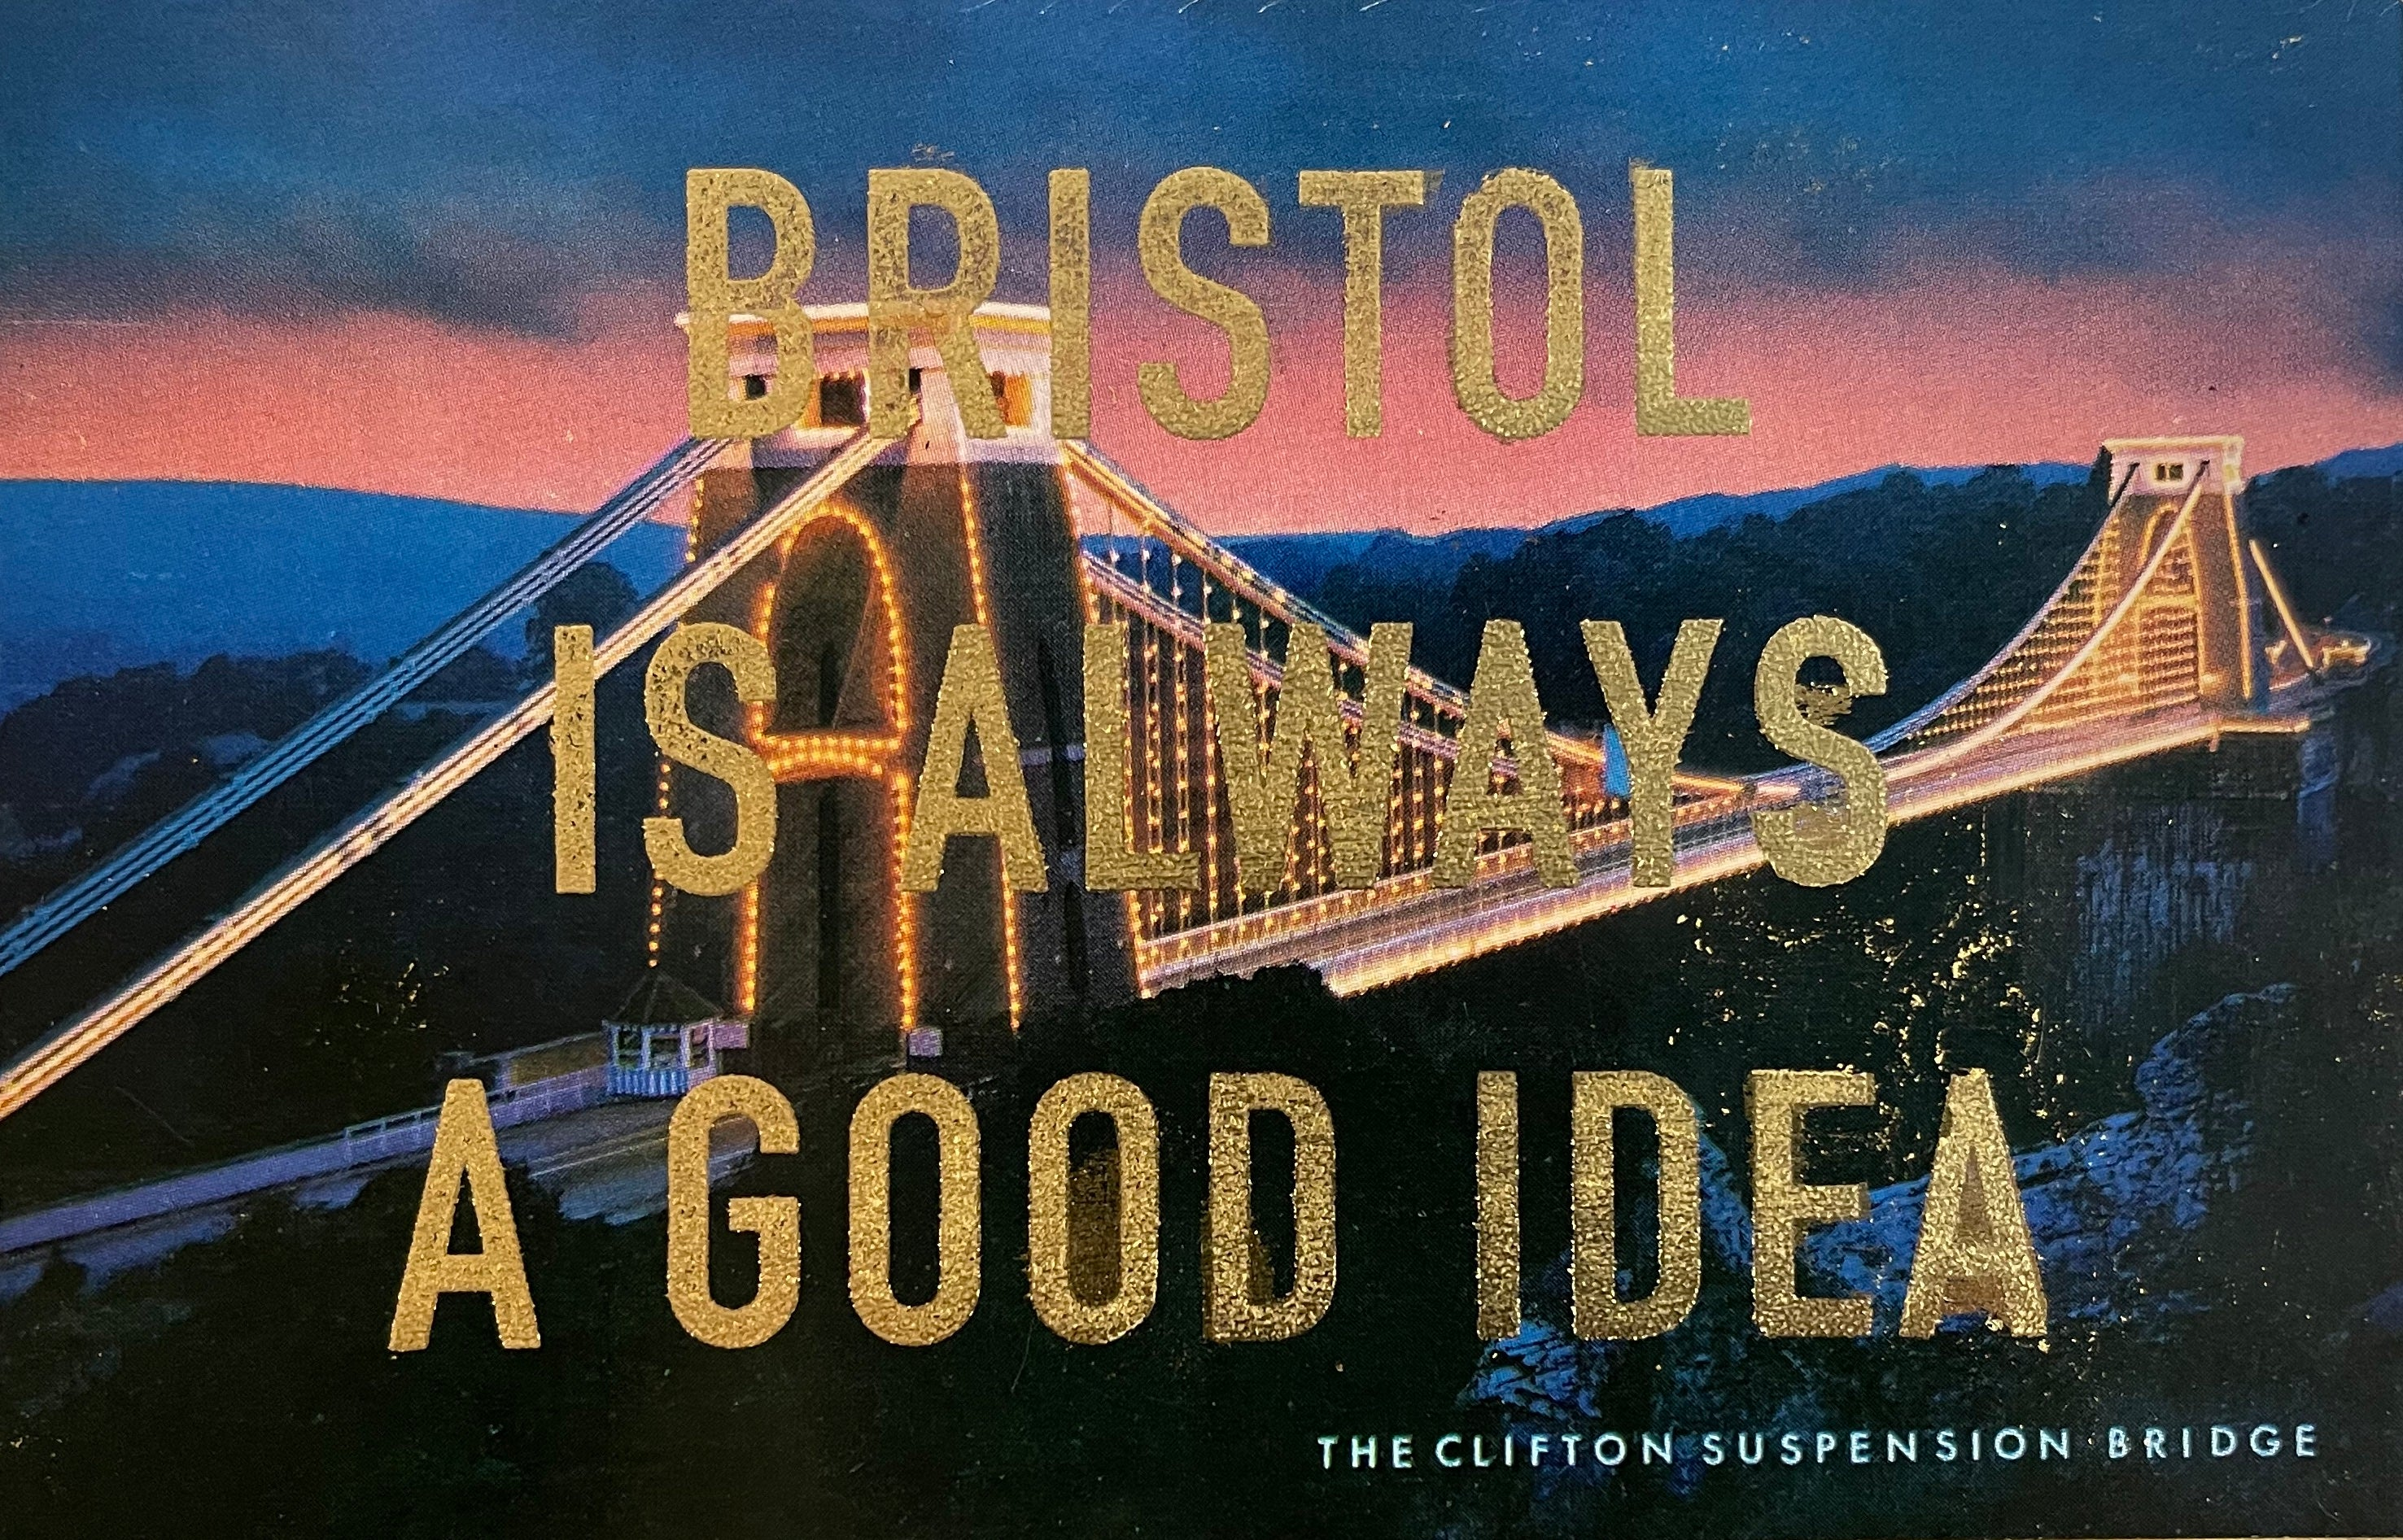 Dave Buonaguidi: Bristol Postcard - The Clifton Suspension Bridge at Night